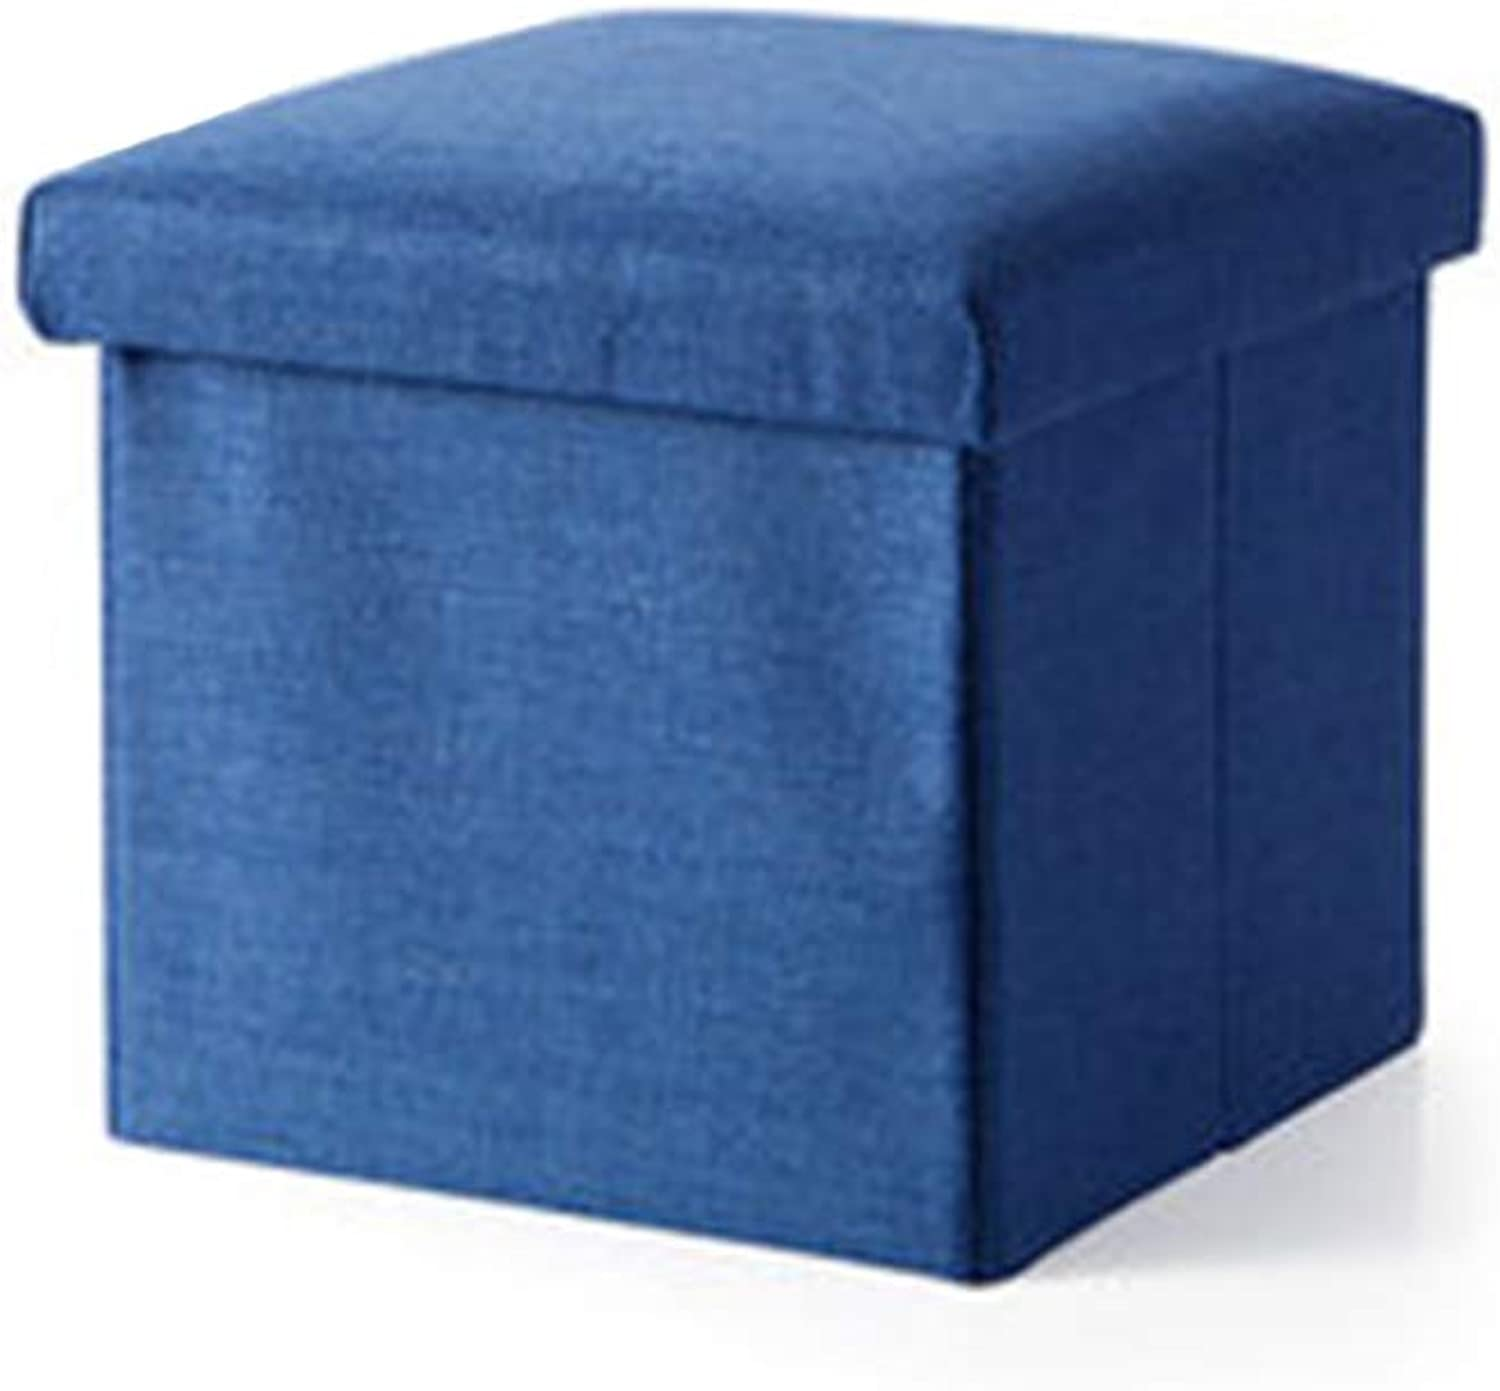 Folding Storage Large Capacity Linen Footstool Cube Small Bench Coffee Table seat Footrest Stool with upholstered Padded seat -A 31x31x31cm